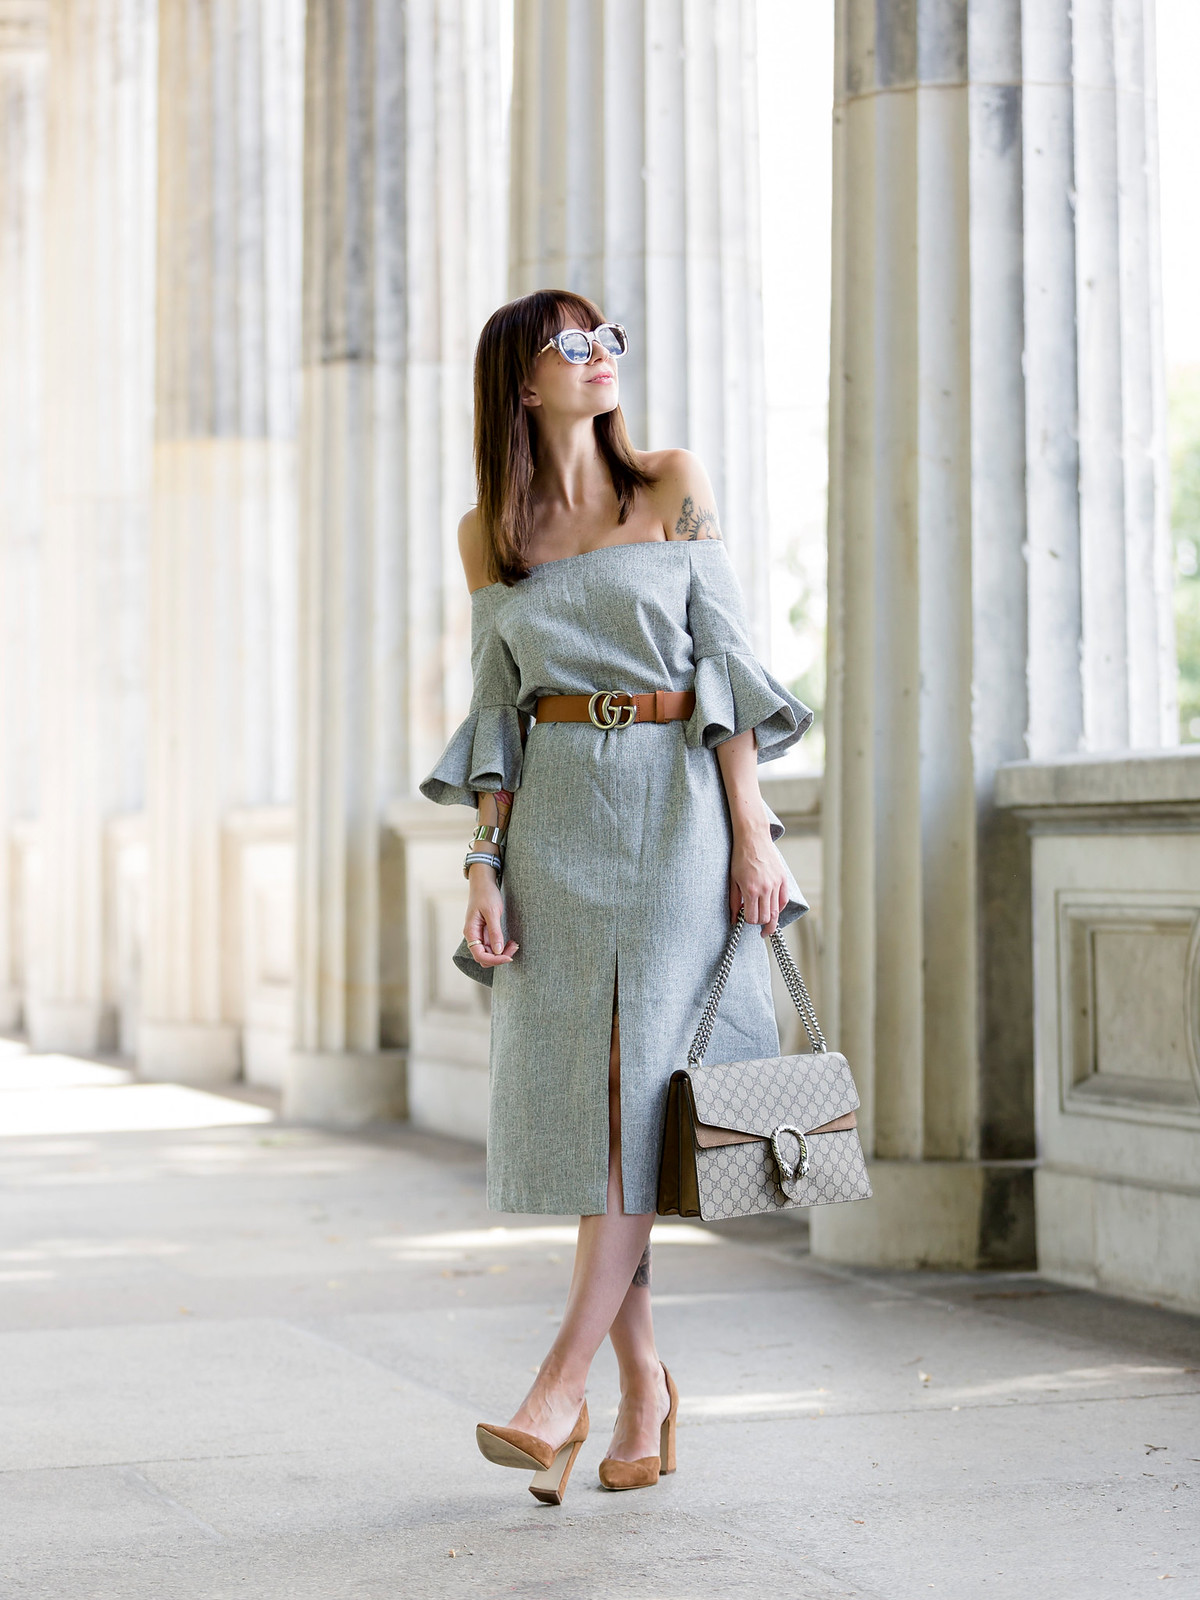 ootd chicwish grey off-shoulder dress volants chic gucci belt dionysus bag gg le specs sunglasses berlin museumsinsel museum island tourist fashionblogger berlin blogger cats & dogs fashion blog ricarda schernus modeblogger 6